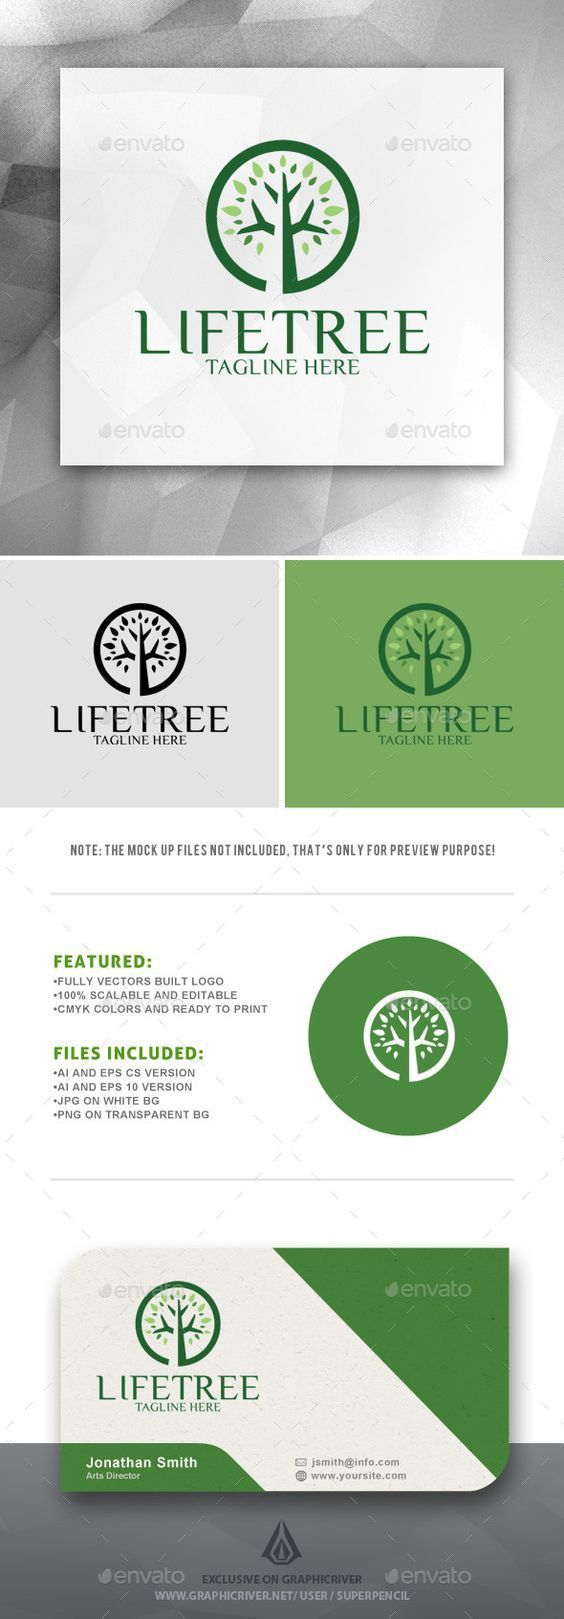 Energy Efficient Home Upgrades in Los Angeles For $0 Down -- Home Improvement Hub -- Via - Life Tree Logo (JPG Image, Vector EPS, AI Illustrator, Resizable, CS, app, center, circle tree, eco, ecology logo, environment, food, forest, fund, garden, green, g (Outdoor Wood Green Life)